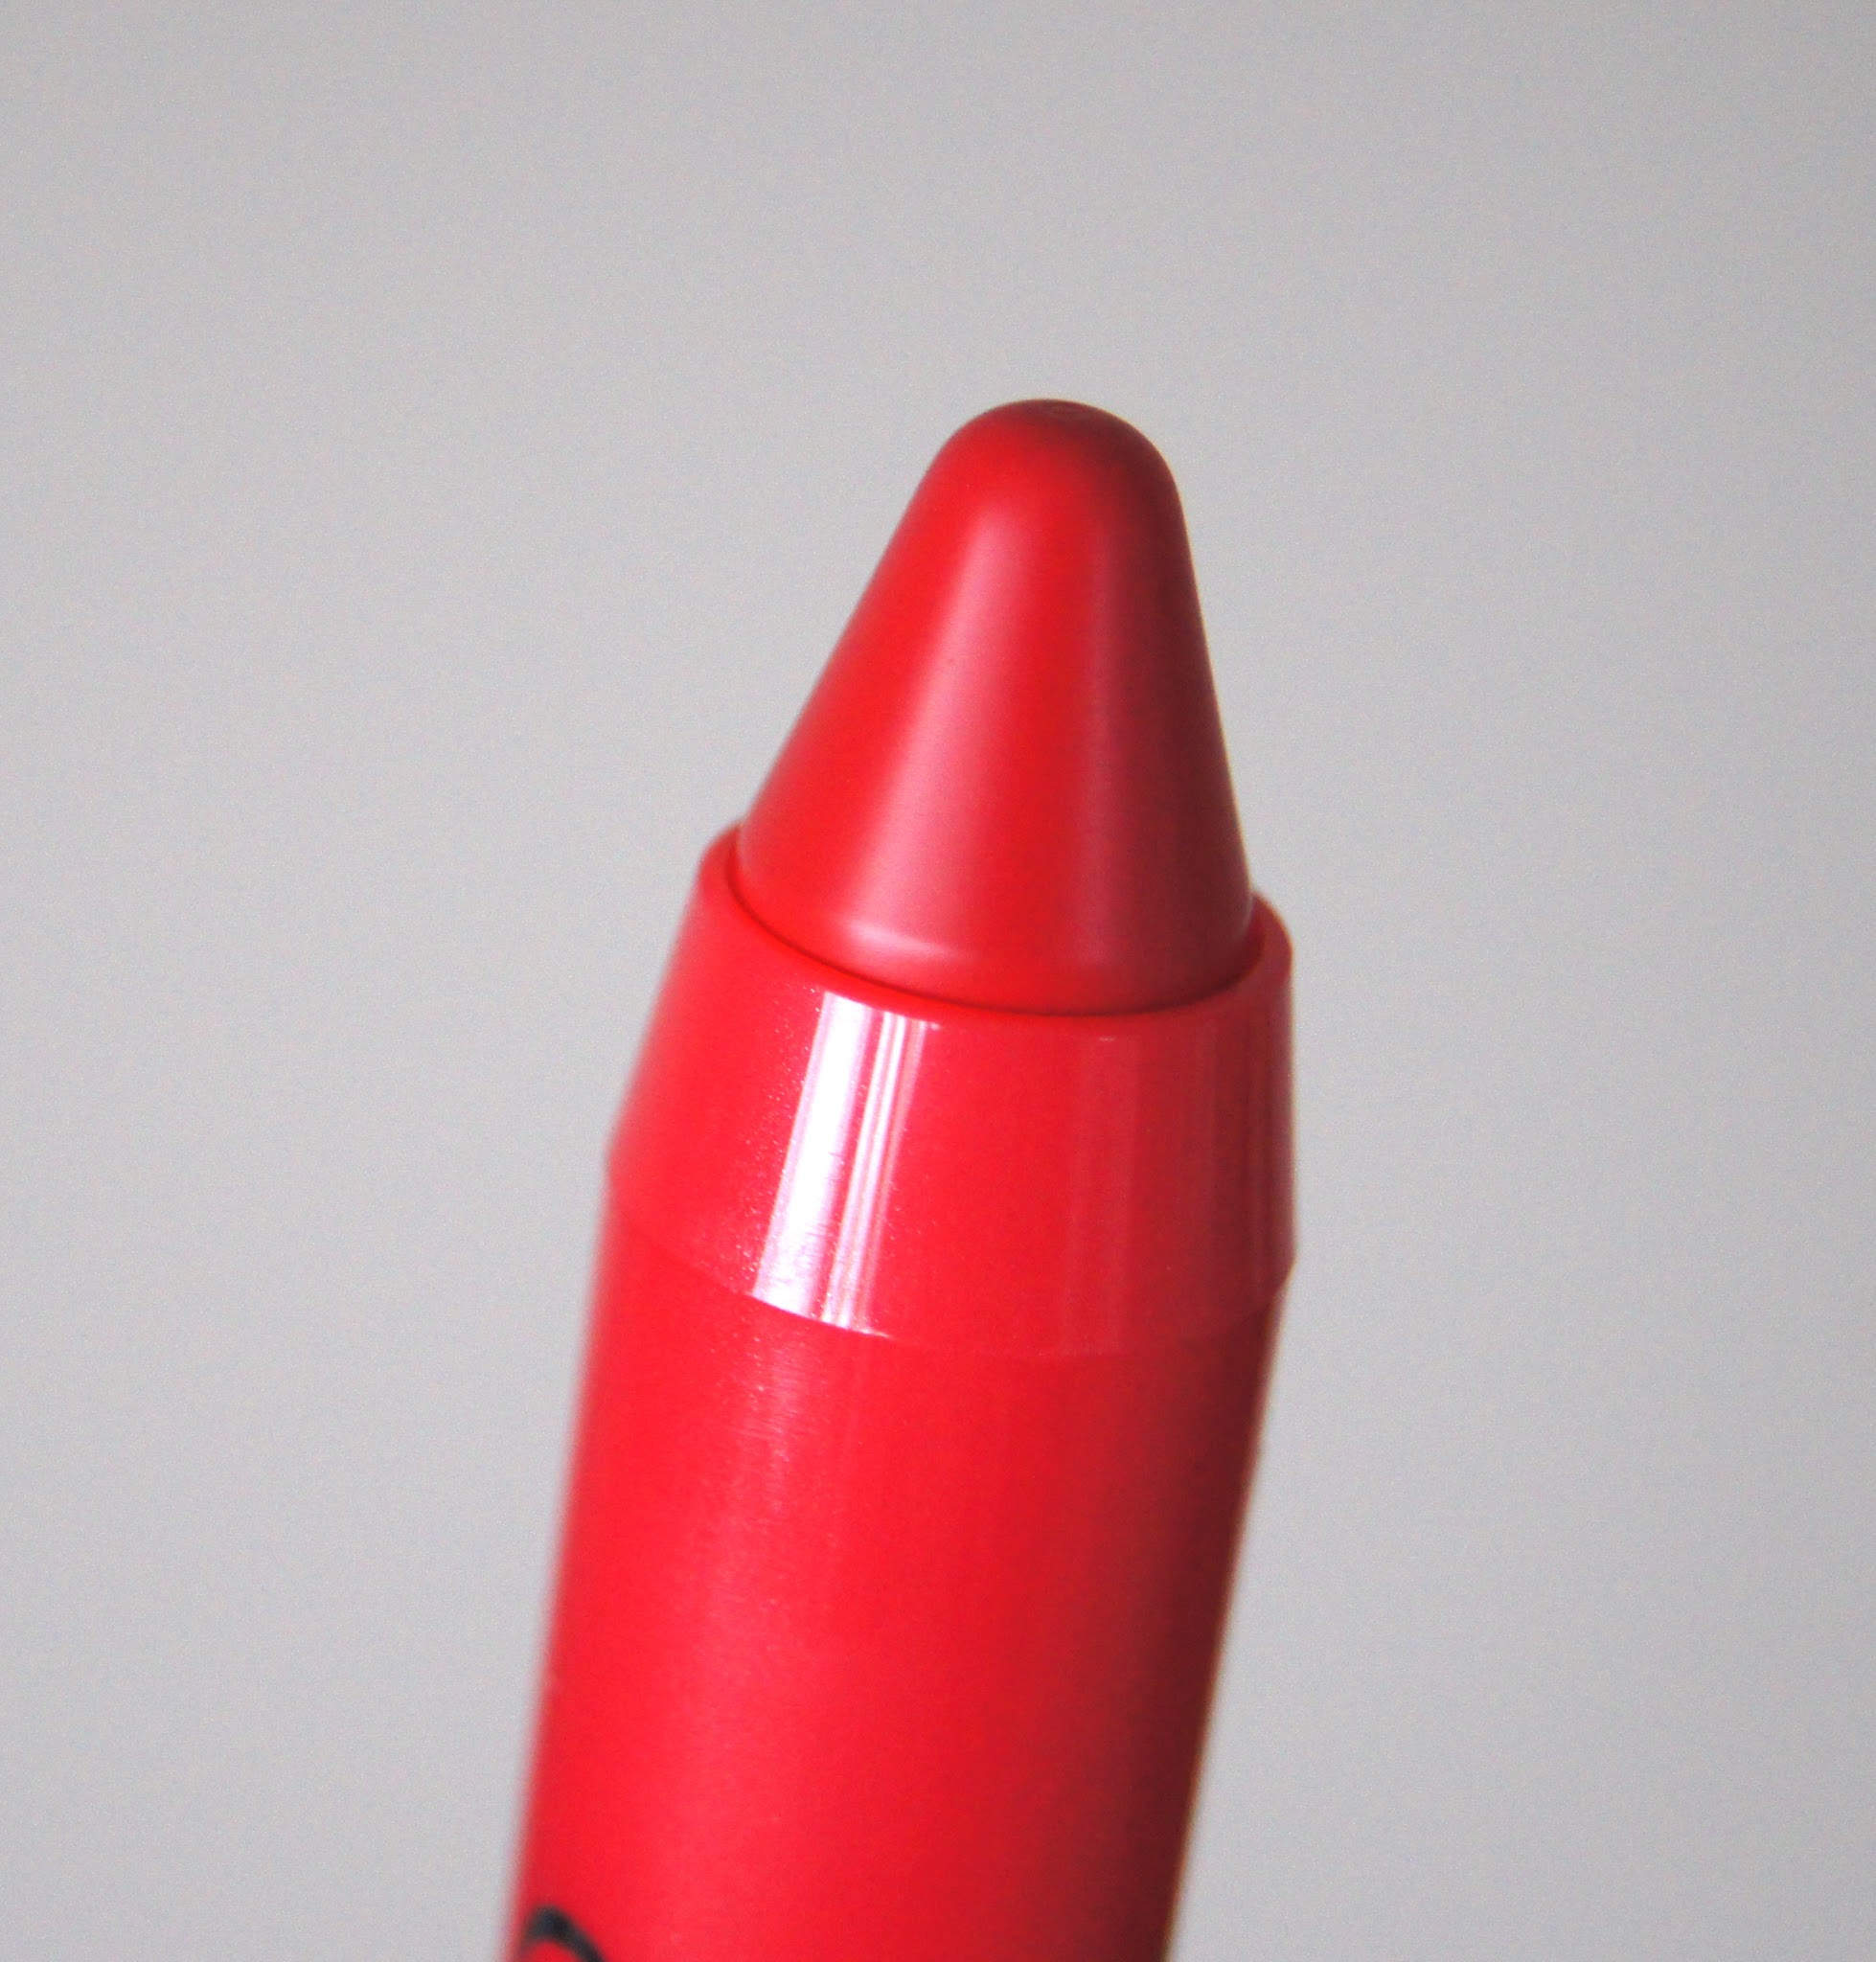 bourjois color boost glossy finish lipstick 01 red sunshine review swatch